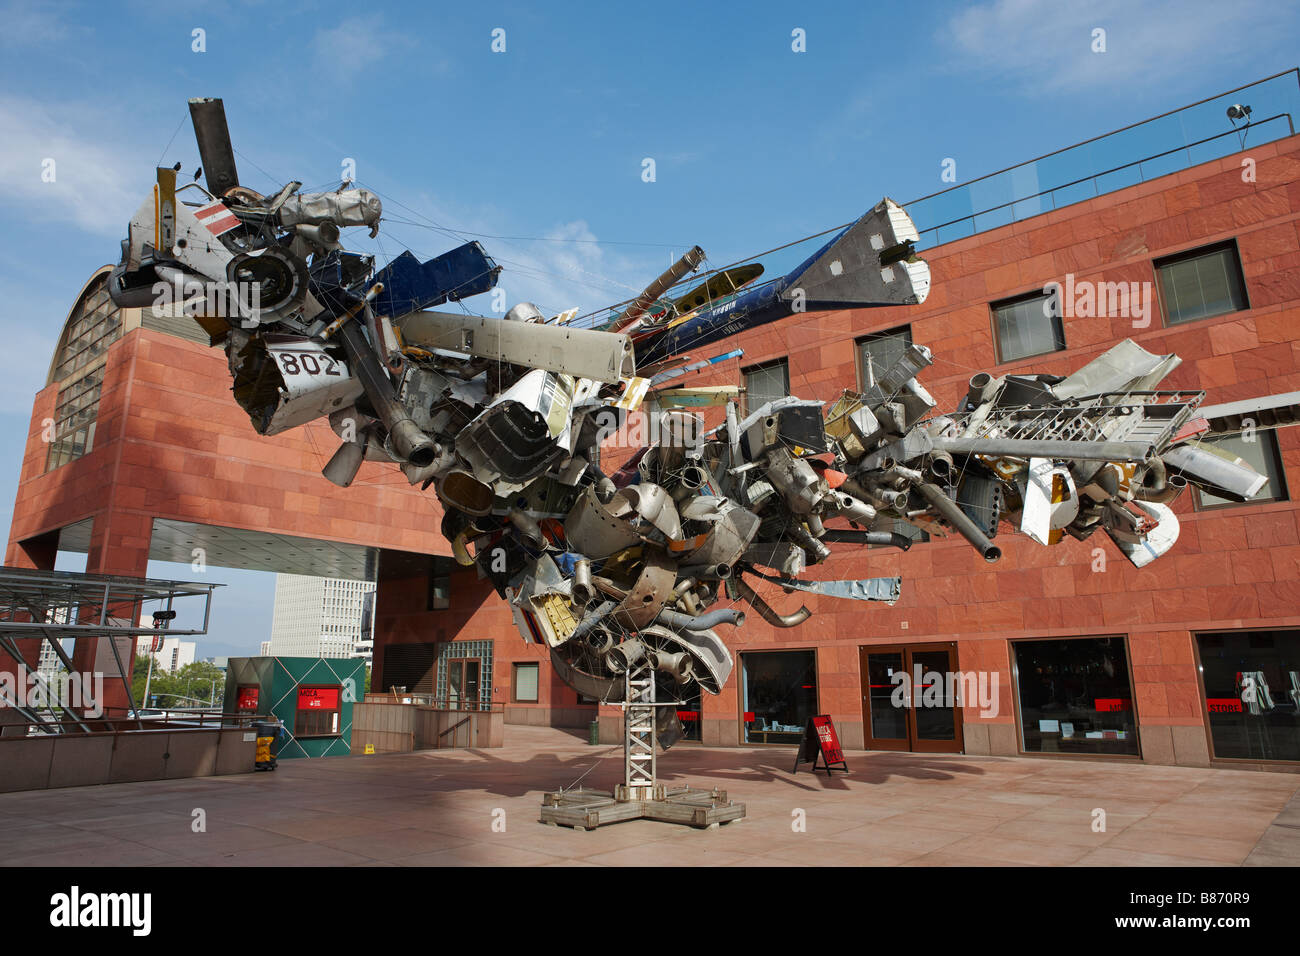 Sculpture made out of scrap airplane parts. Downtown Los Angeles, California, USA. - Stock Image